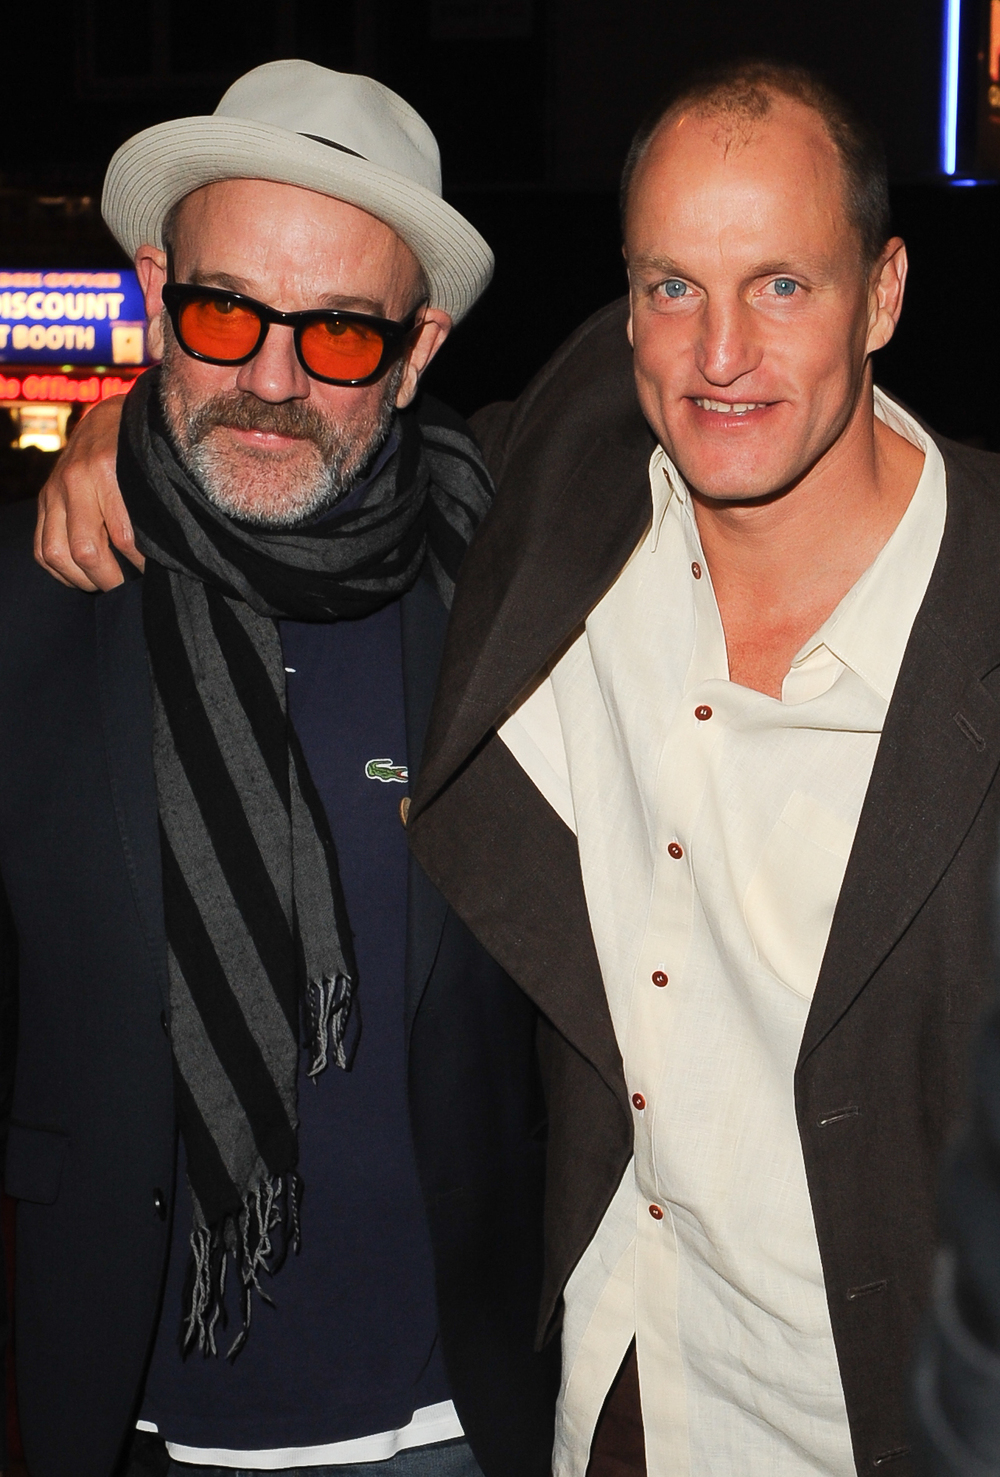 WOODY_HARRELSON_15OCT-007.jpg